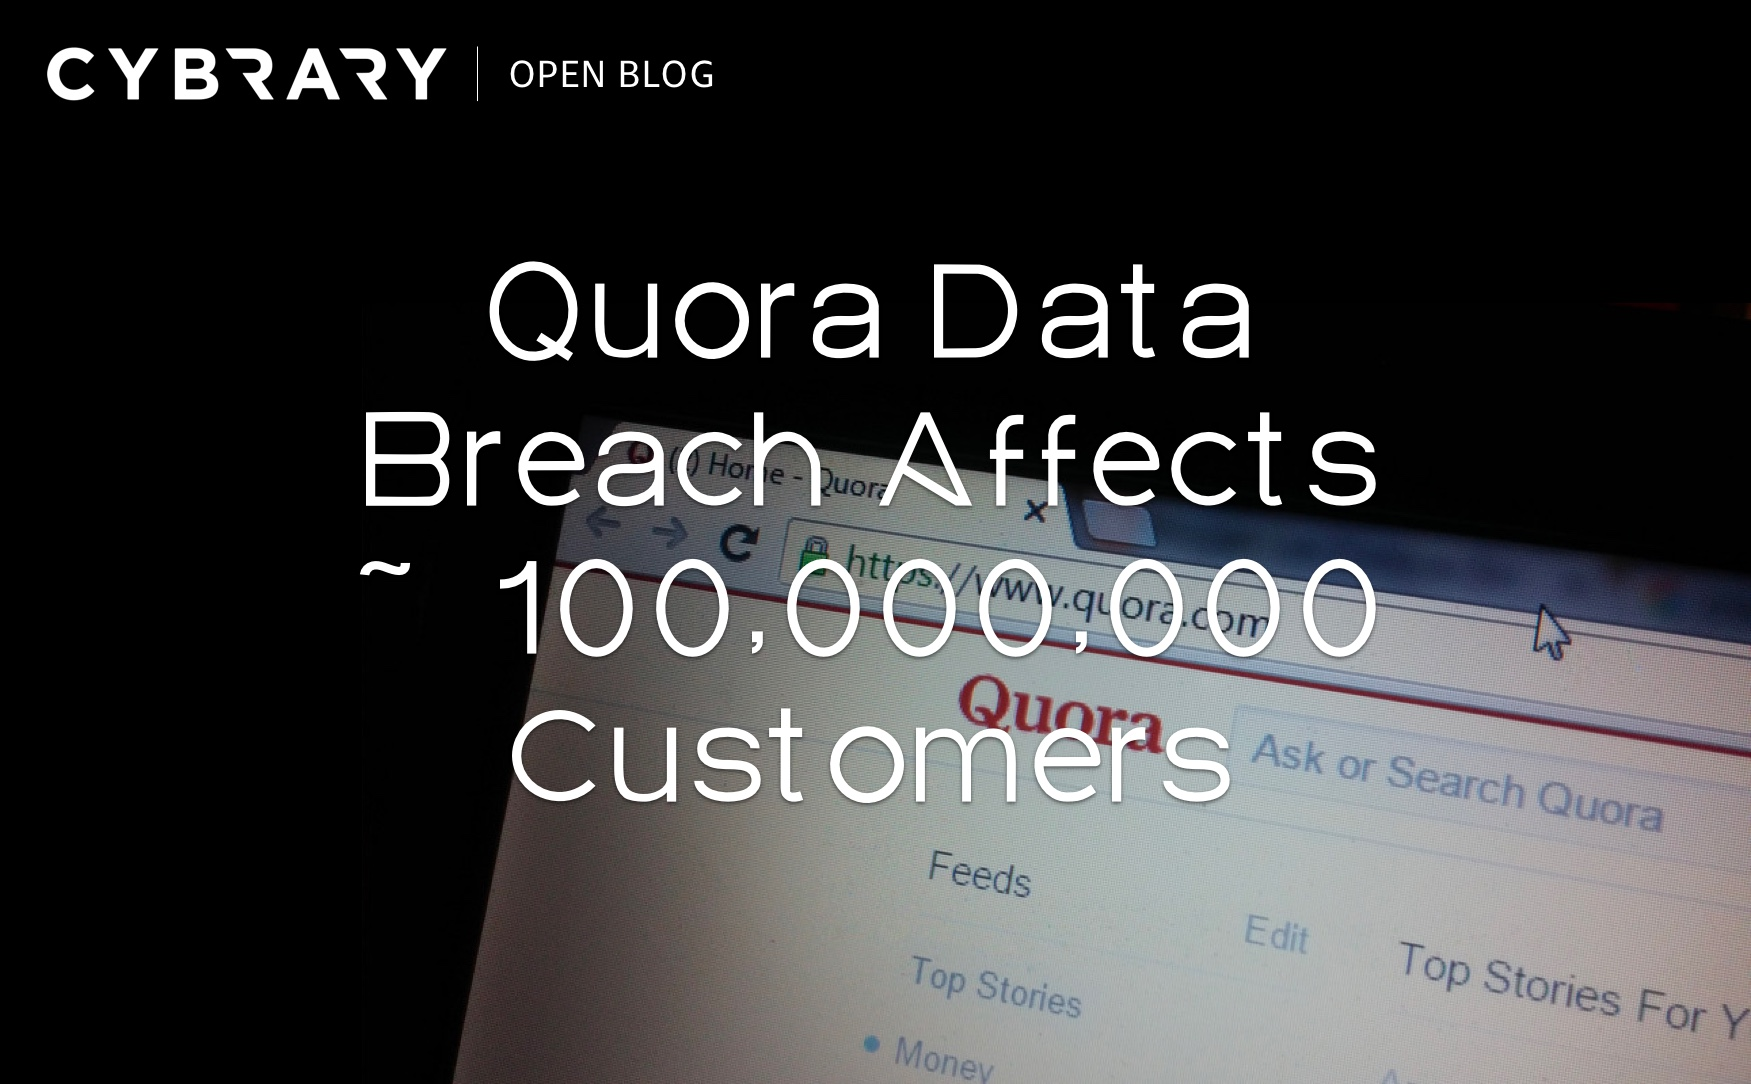 Quora Data Breach Affects ~100,000,000 Customers.